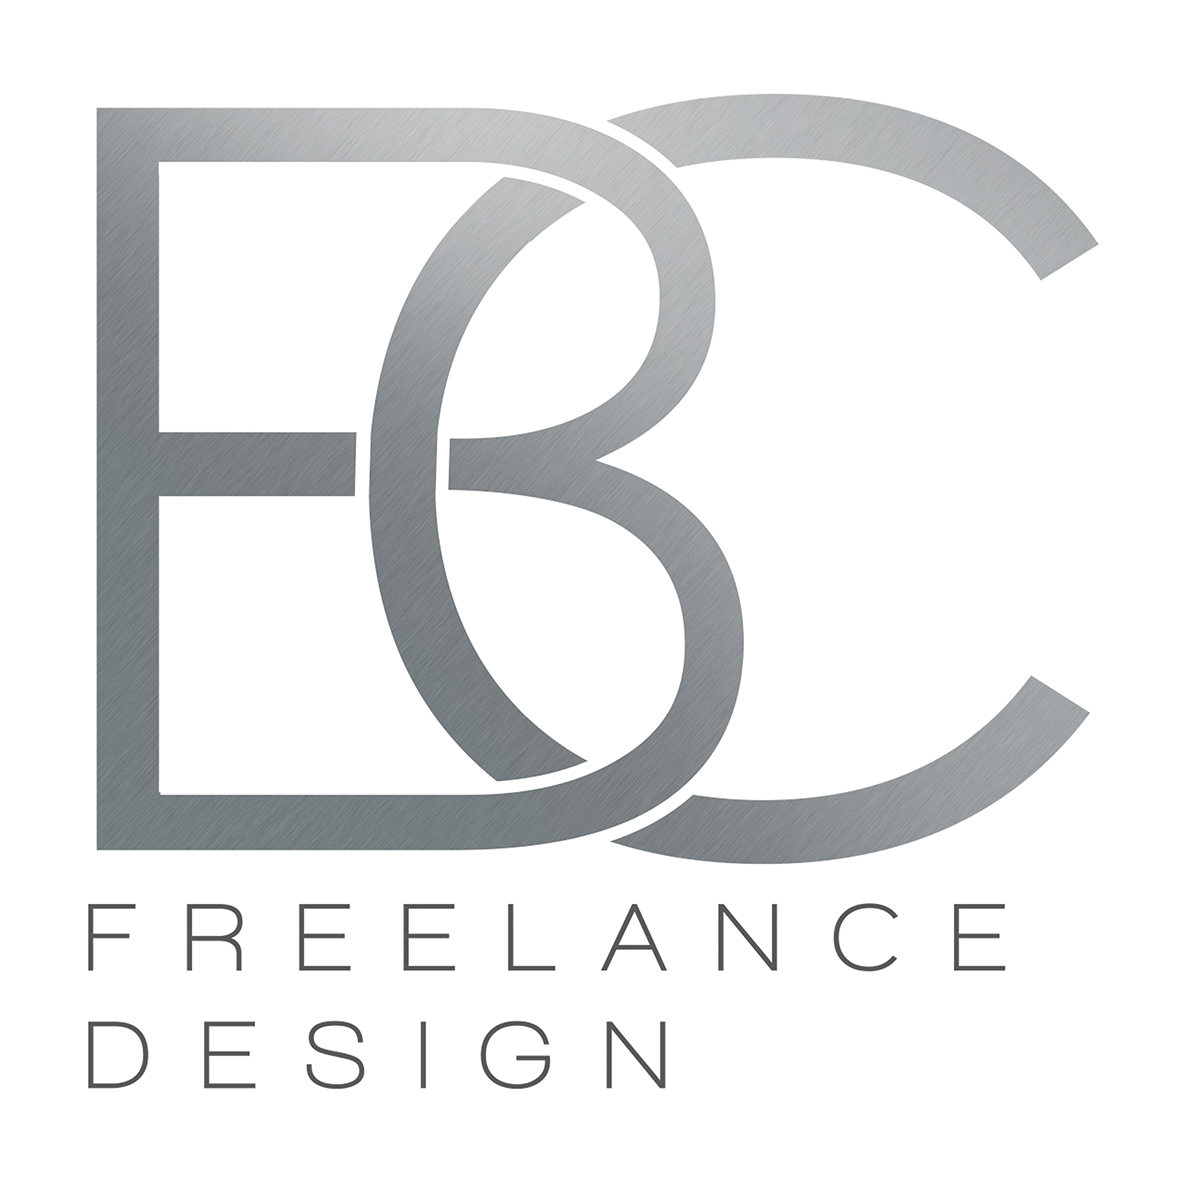 BC freelance design - St Kilda Accommodation